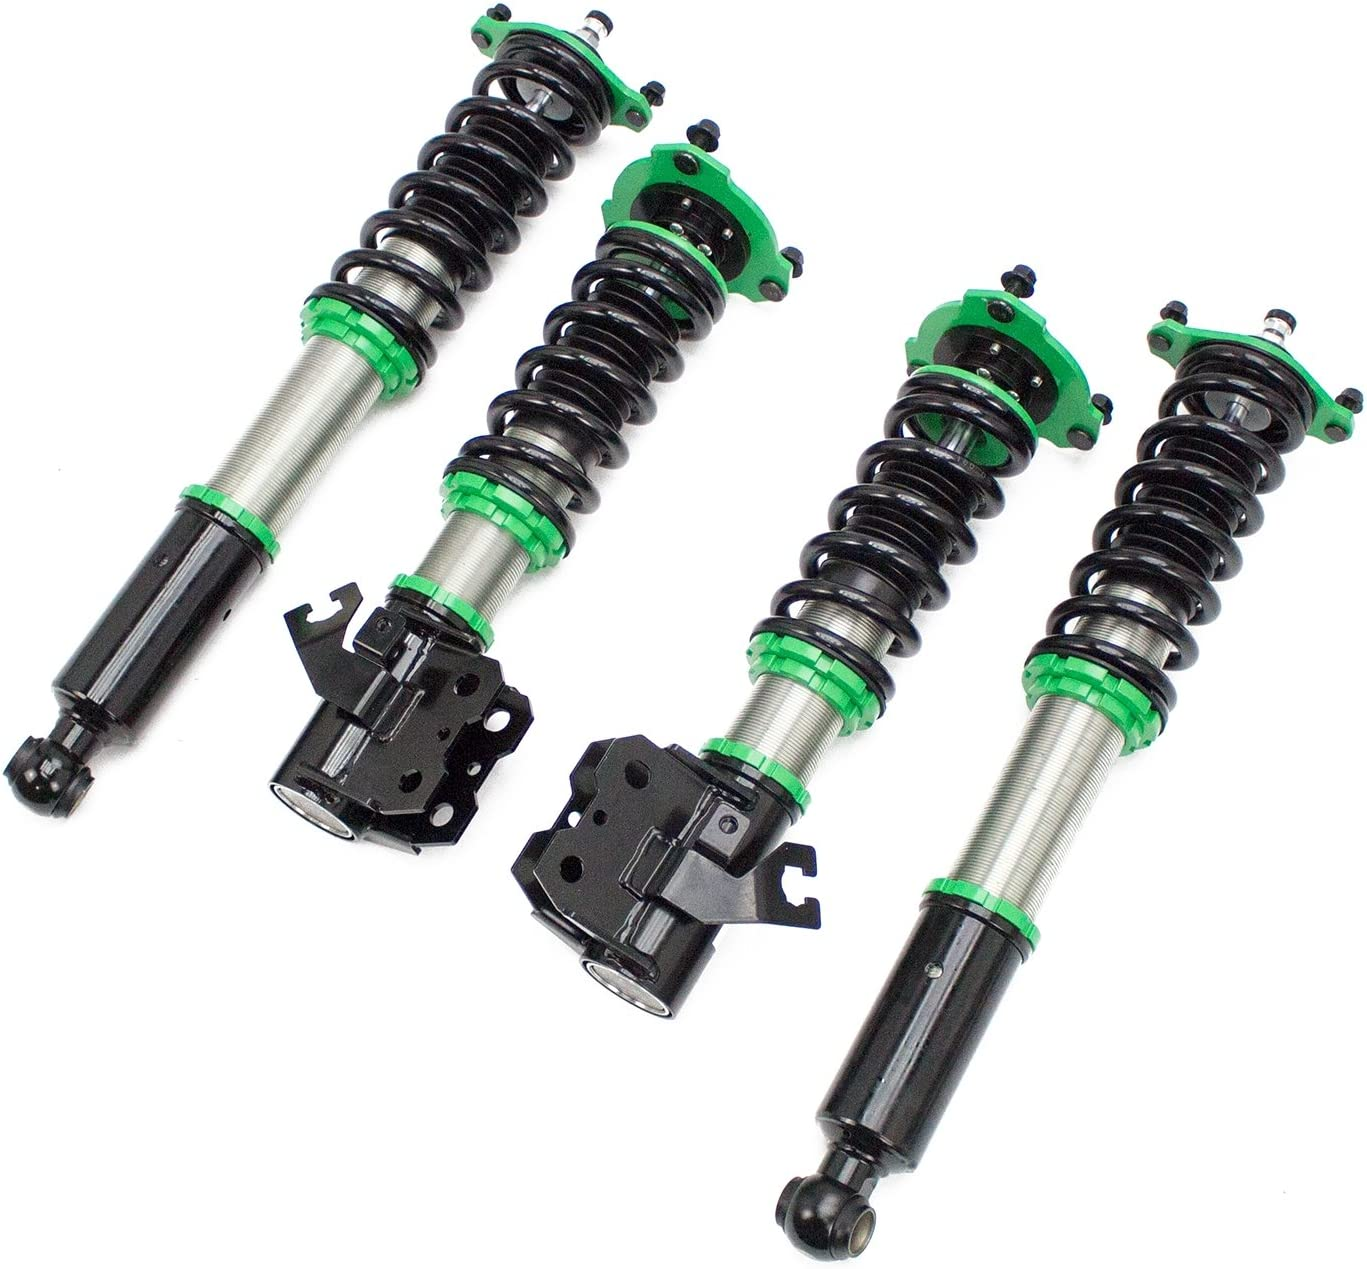 Rev9 R9-HS2-007 compatible with Nissan 240SX 32 Damping Level Adjustment S14 1995-98 Hyper-Street II Coilover Kit w// 32-Way Damping Force Adjustment Lowering Kit Ride Height Adjustable